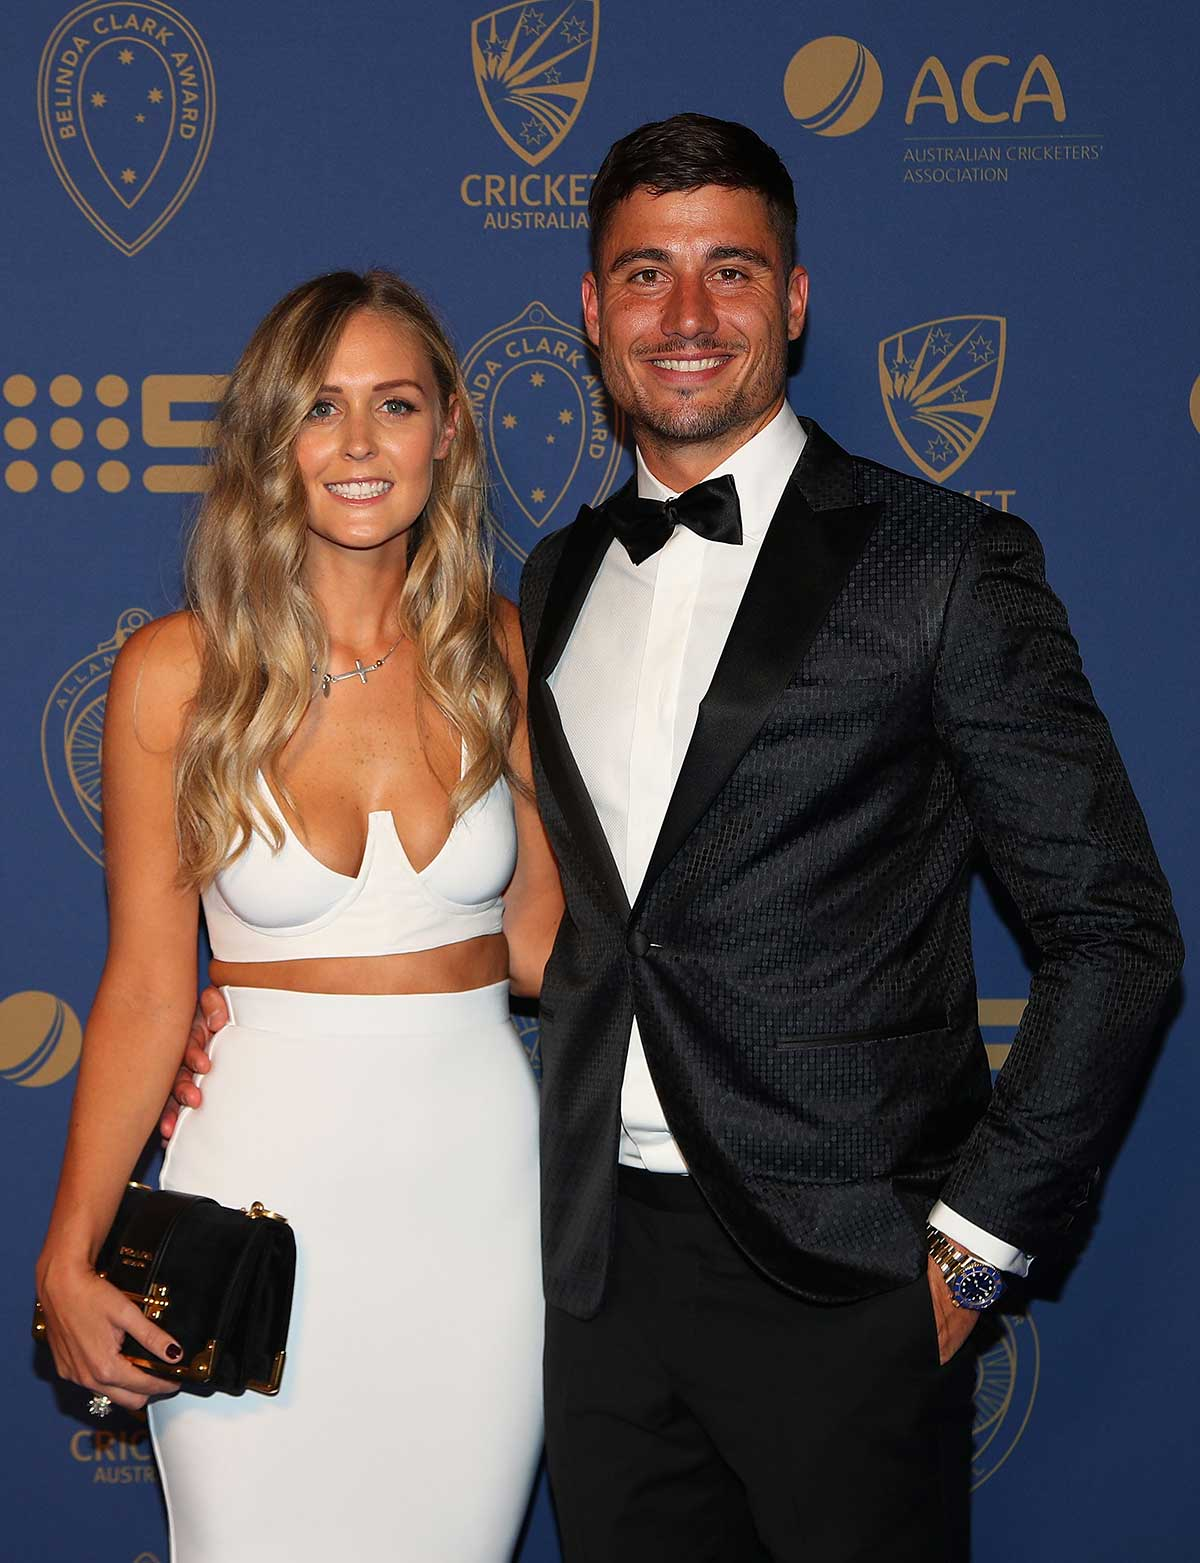 Marcus Stoinis and Stephanie Muller on the carpet // Getty